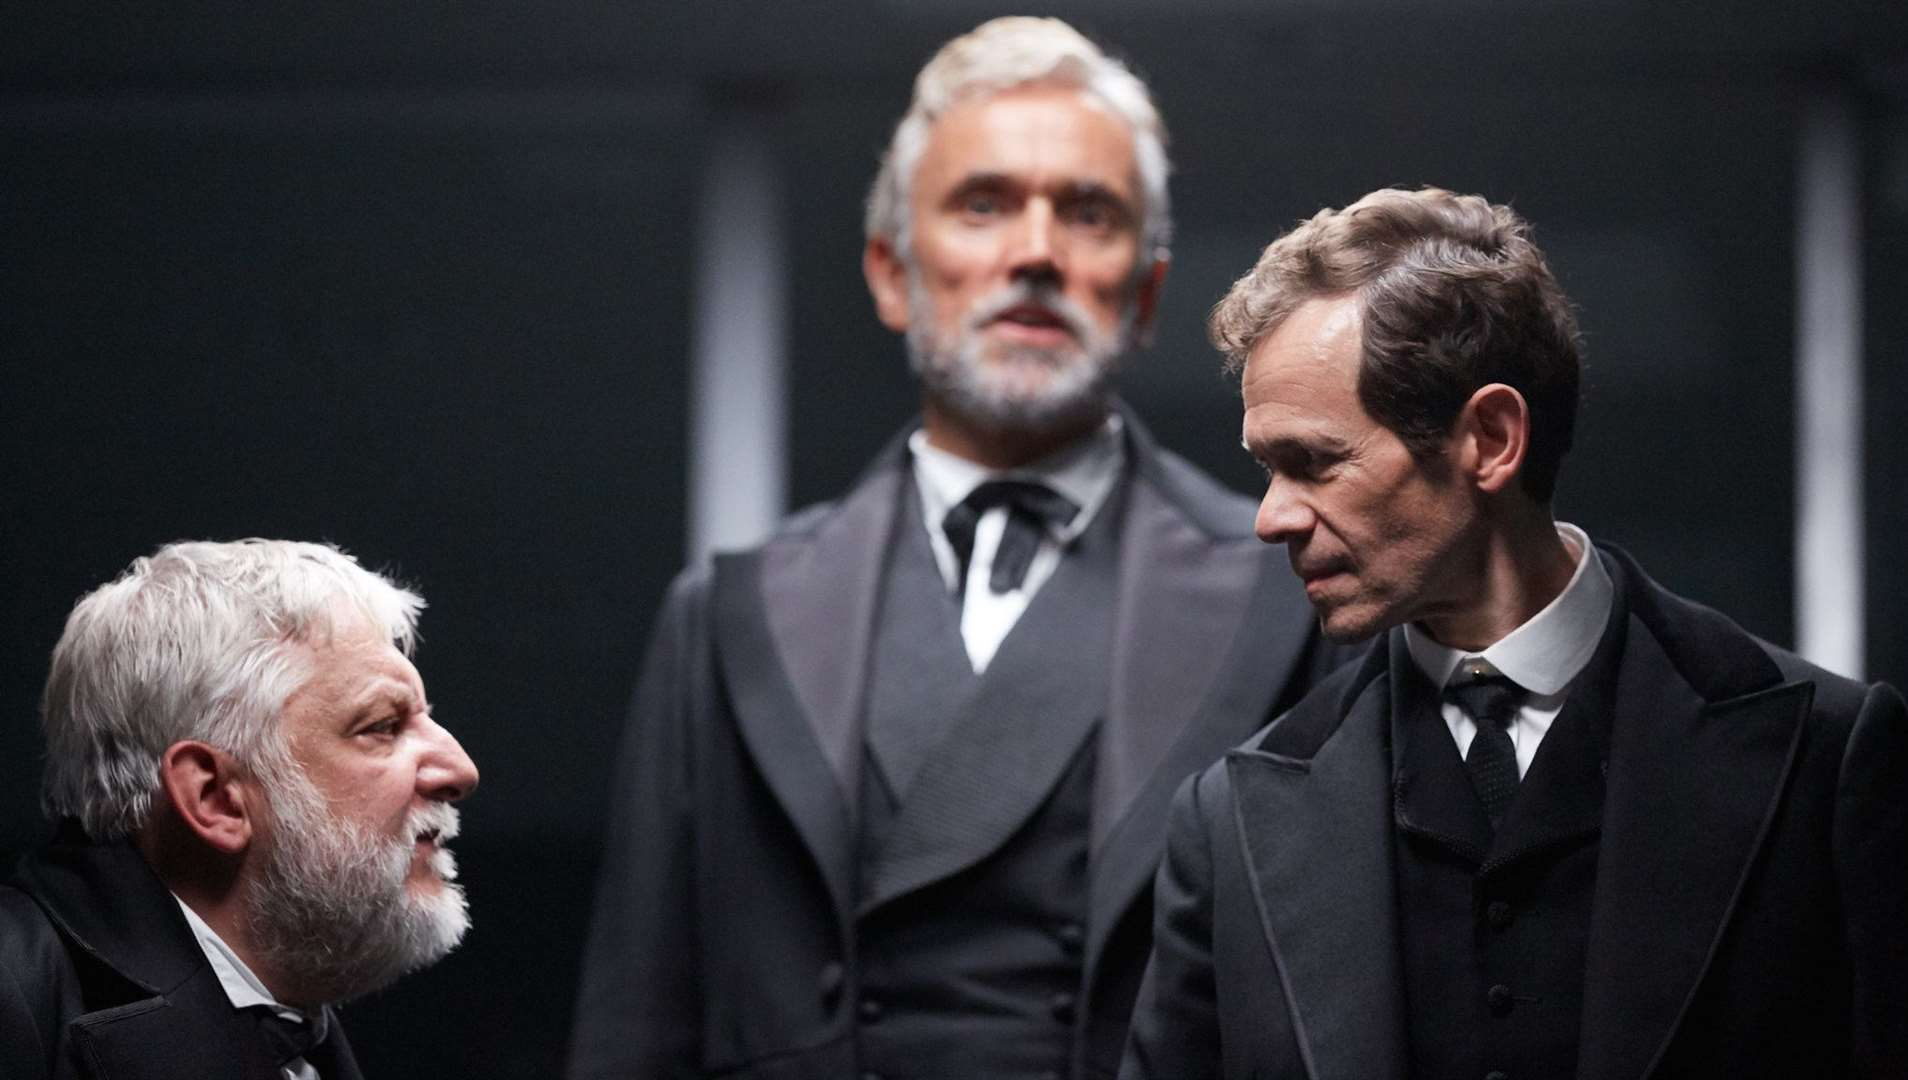 Simon Russell Beale, Ben Miles and Adam Godley in The Lehman Trilogy at the National Theatre, London, directed by Sam Mendes. Photo by Mark Douet.